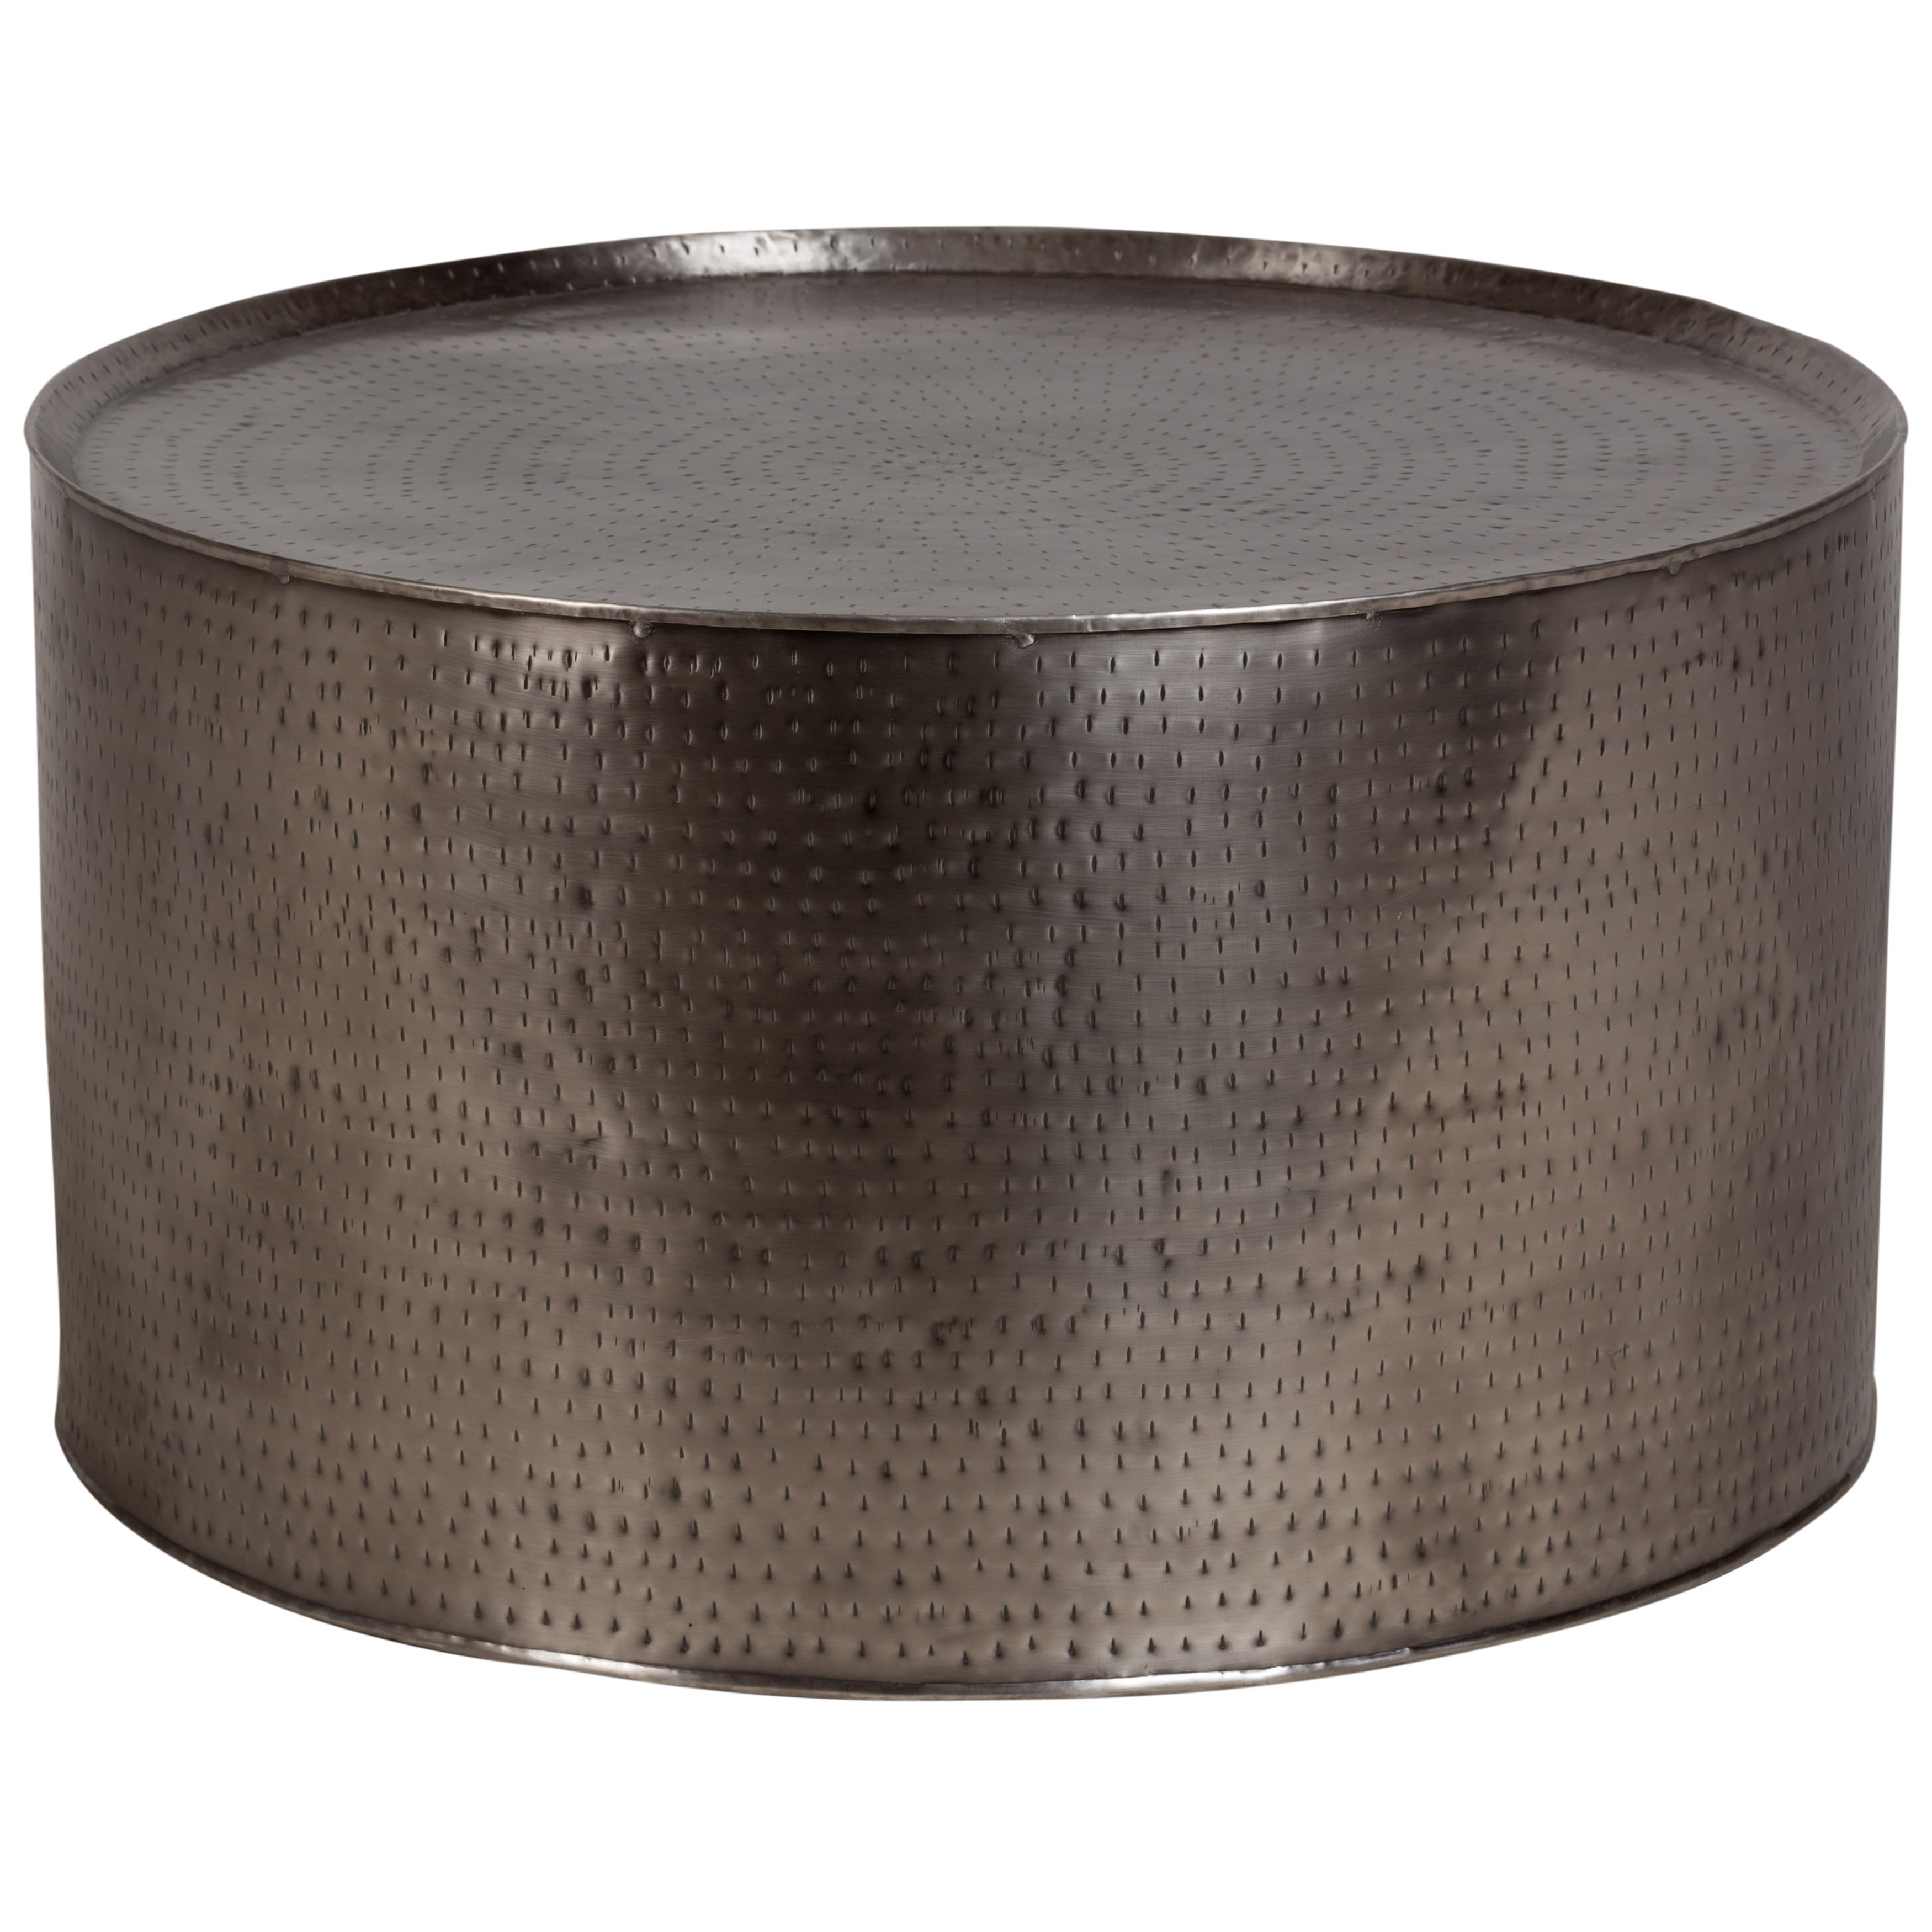 Genial Shop Rotonde Industrial Hand Hammered Coffee Table, Nickel   Free Shipping  Today   Overstock   28275132